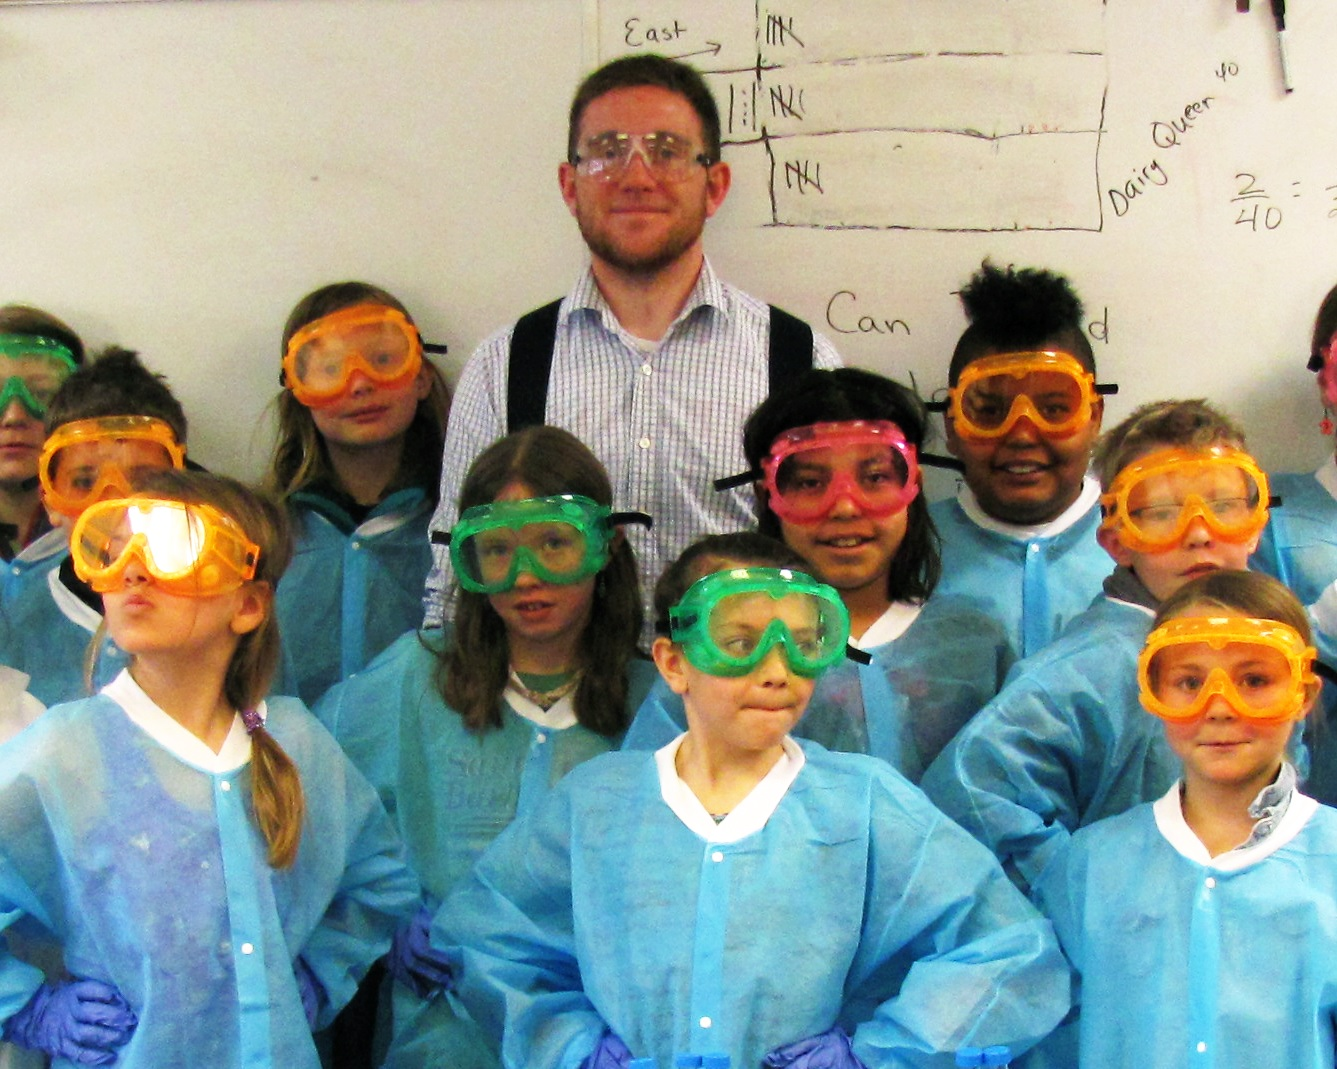 Will McGuinness with children in lab goggles